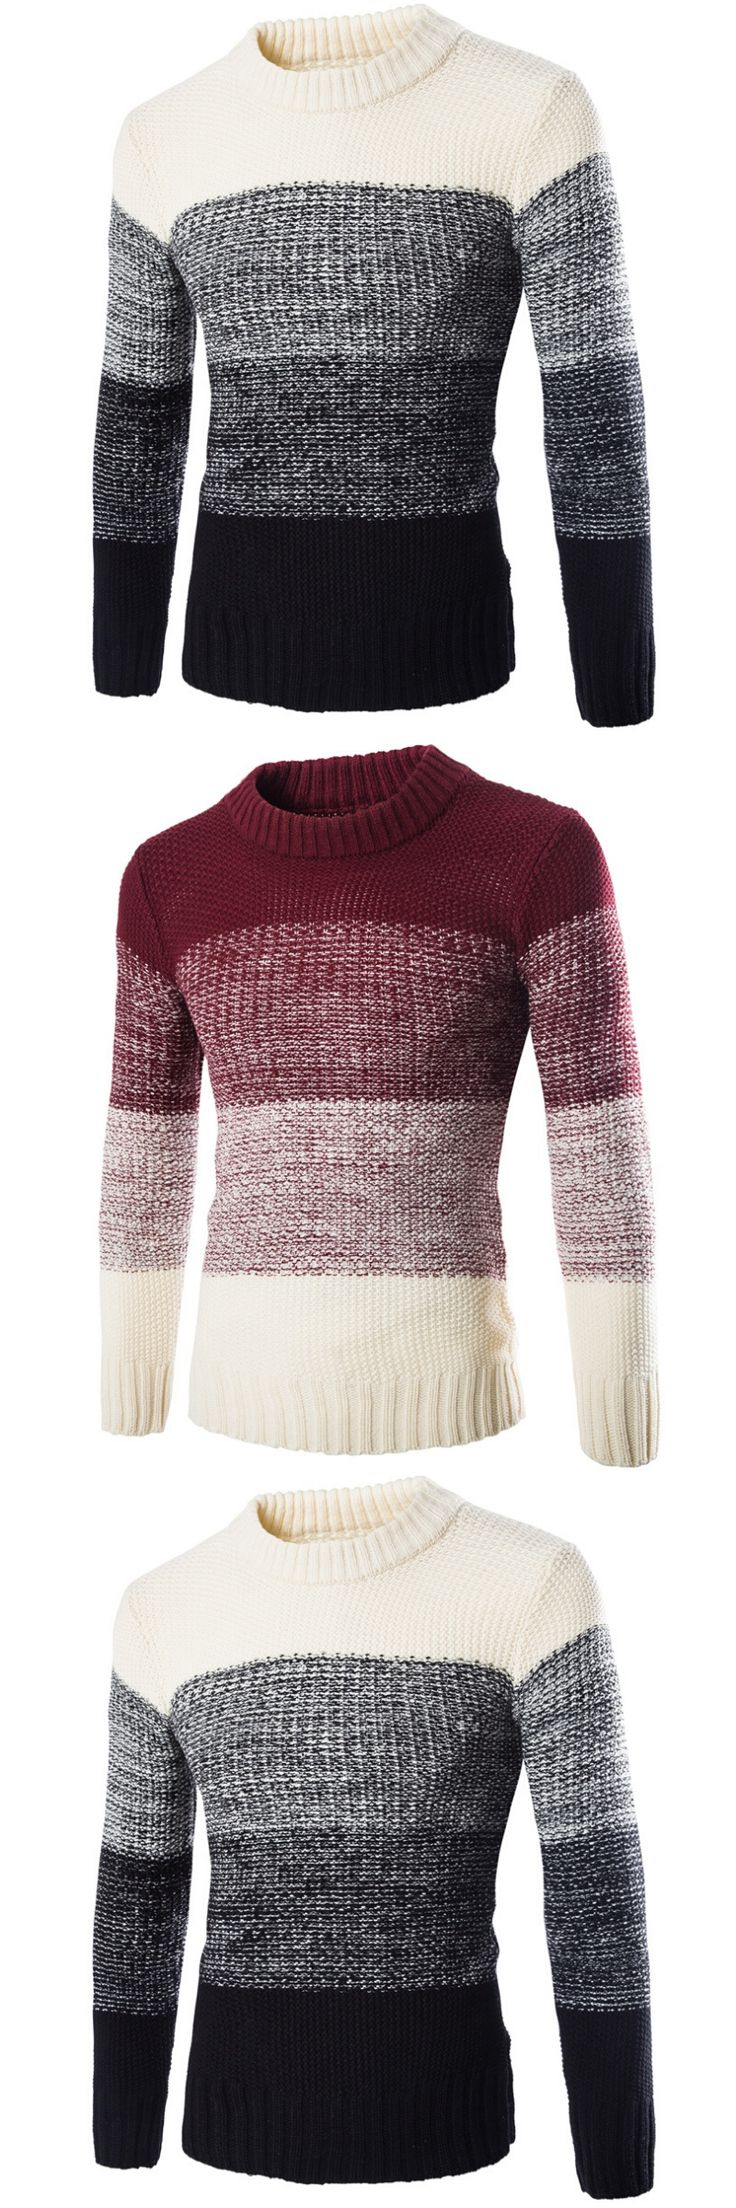 The New Winter Men's Fashion Personality High-Grade Men Hitting Scene Of England 's Pullovers Leisure Men's Cashmere Sweater Men